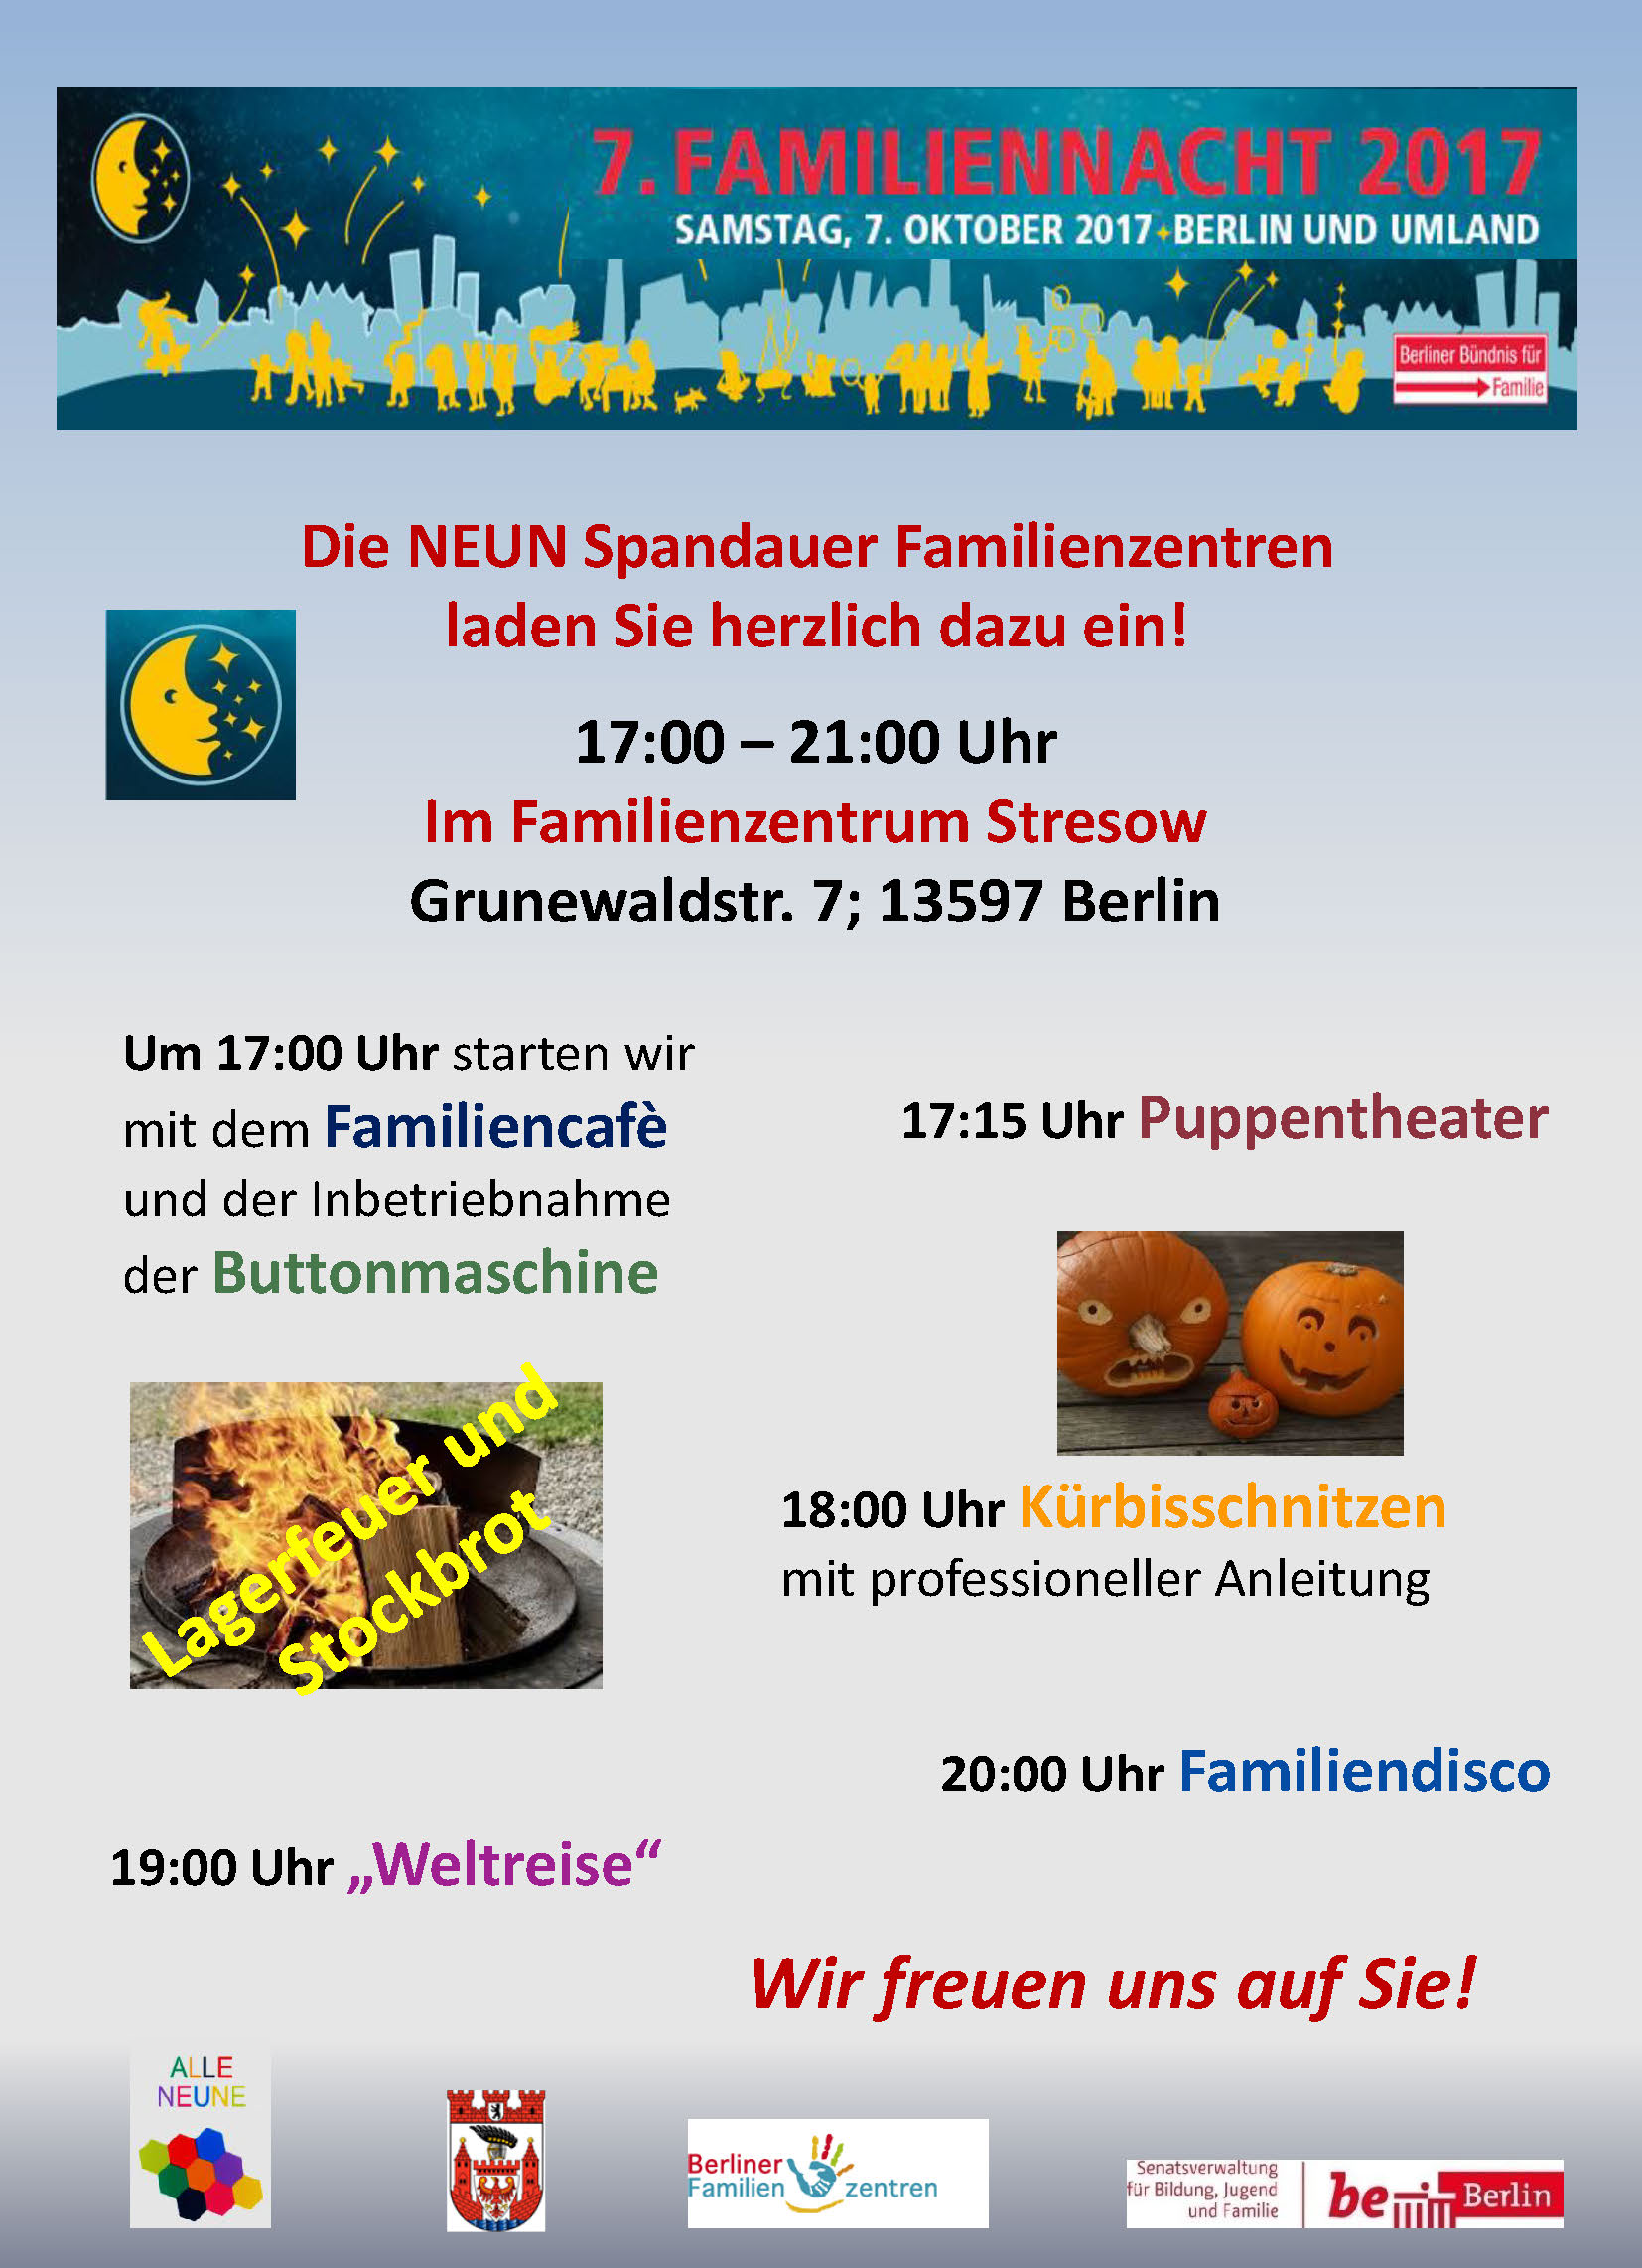 7. Familiennacht in Spandau